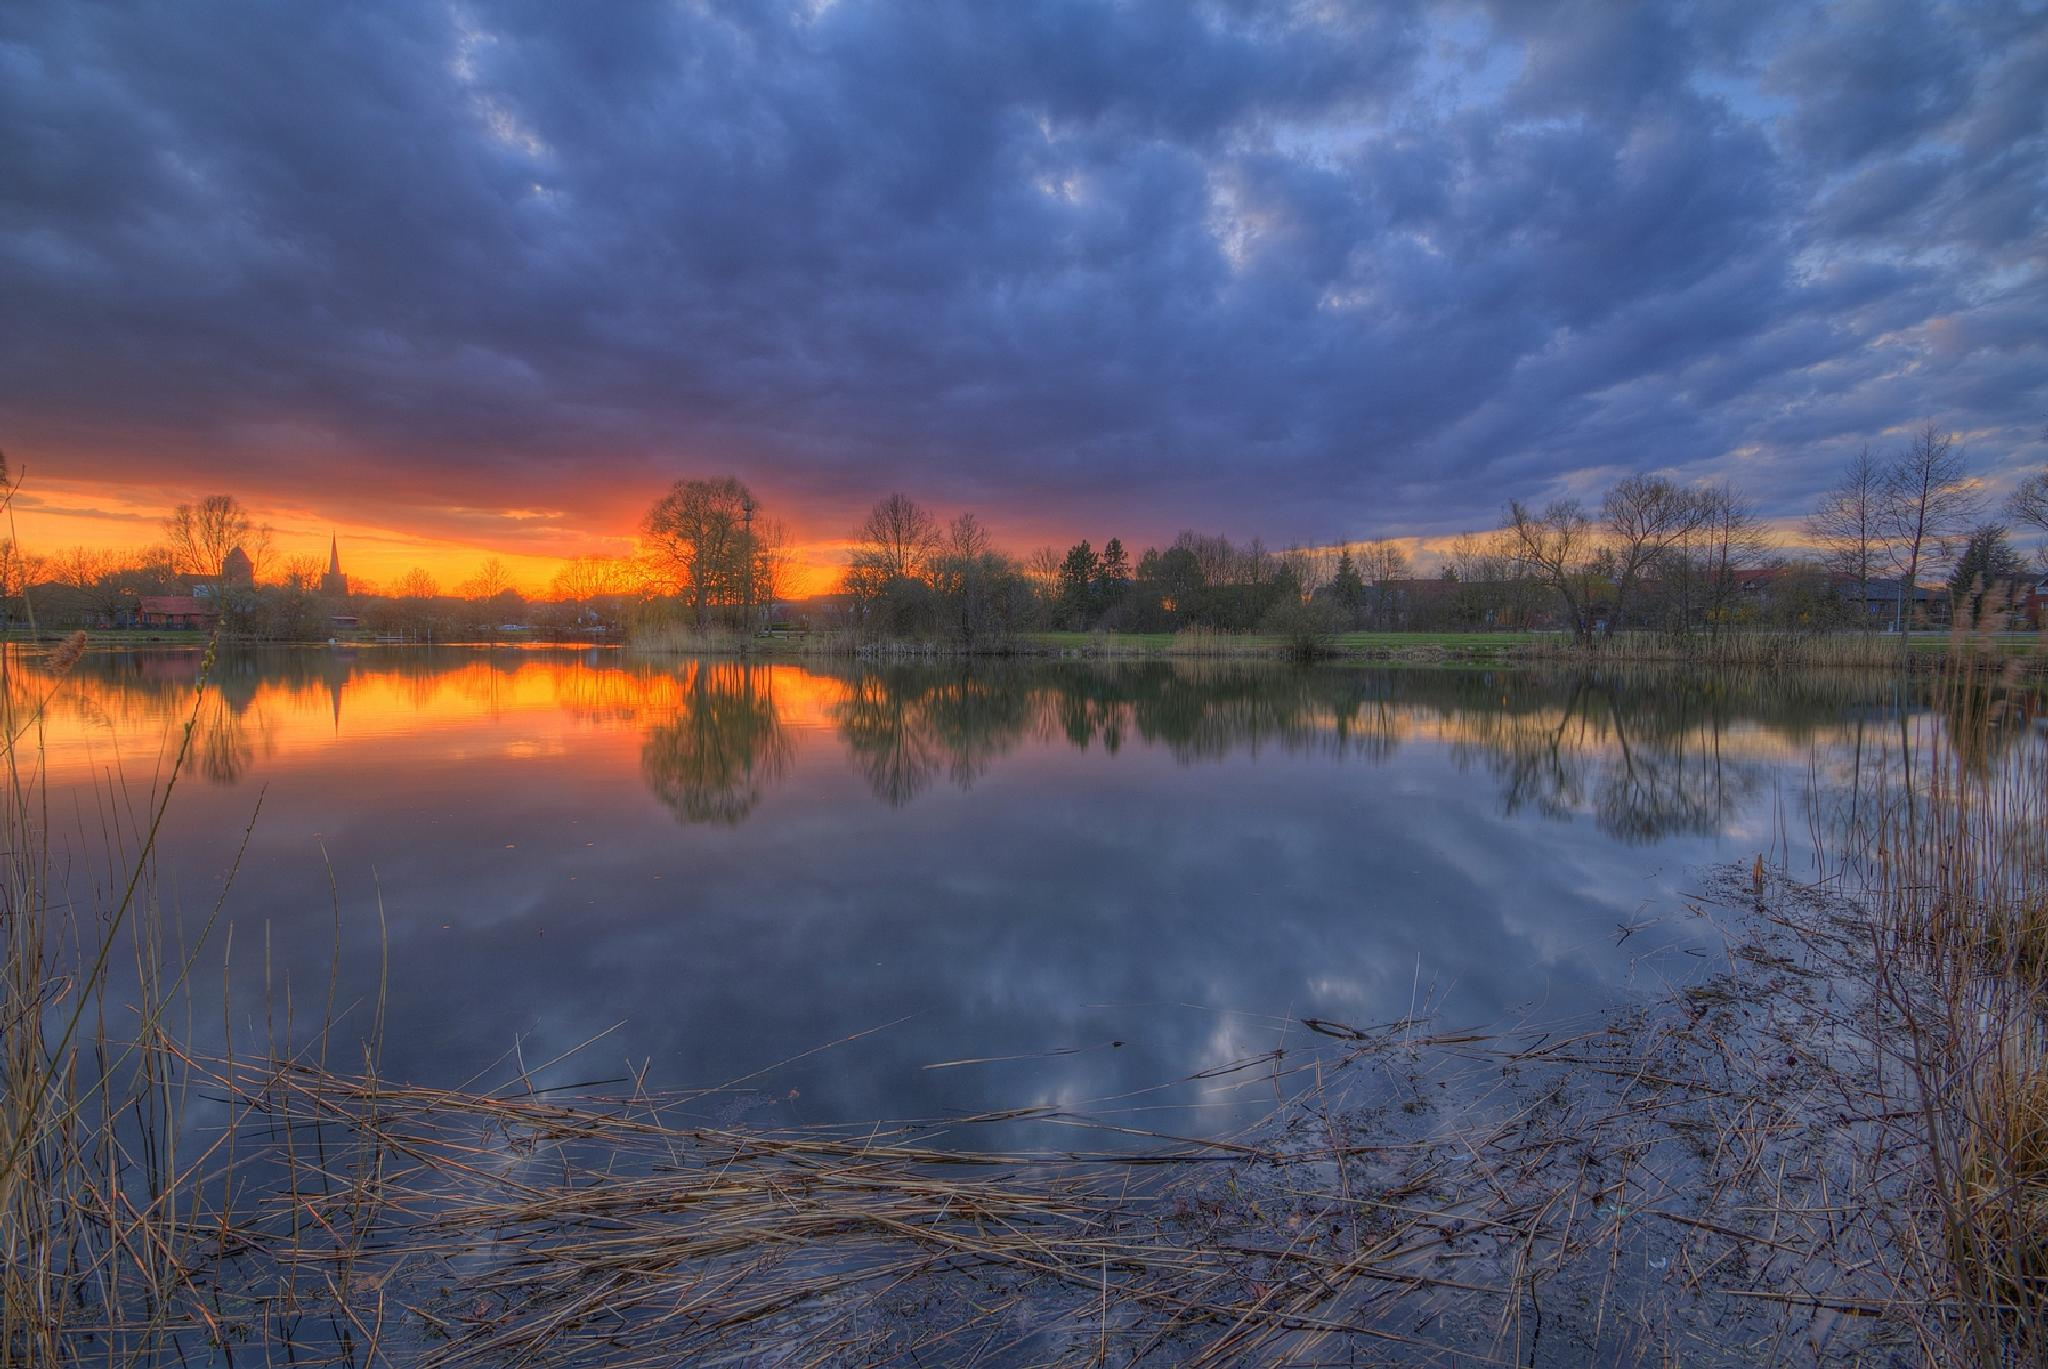 Today's sunset in Dannenberg! by Maik Richter Photography